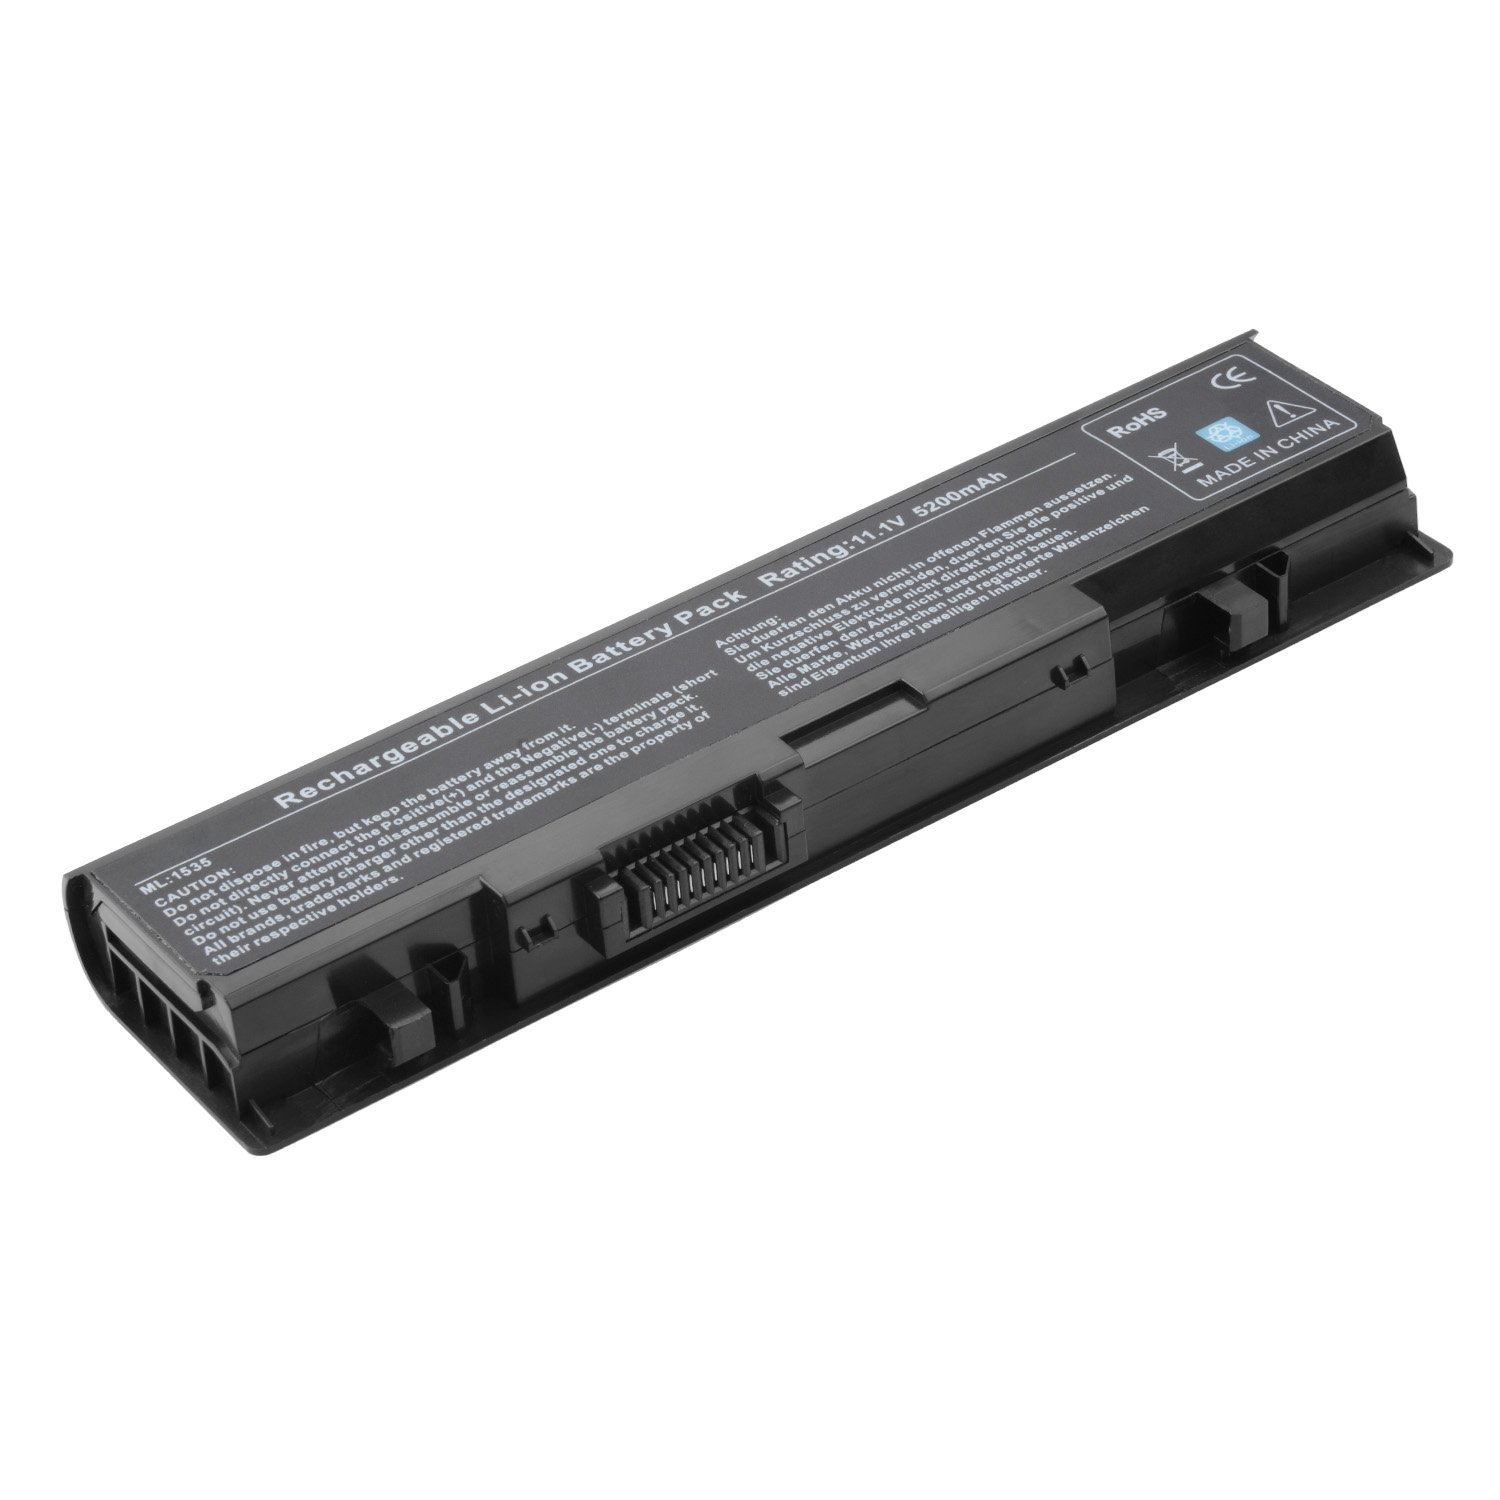 TAUPO Replacement Laptop Battery for Dell Studio WU946 1558 1555 1537 1535 PP39L PP33L 1536, fits P/N WU946 MT264 - 12 Months Warranty